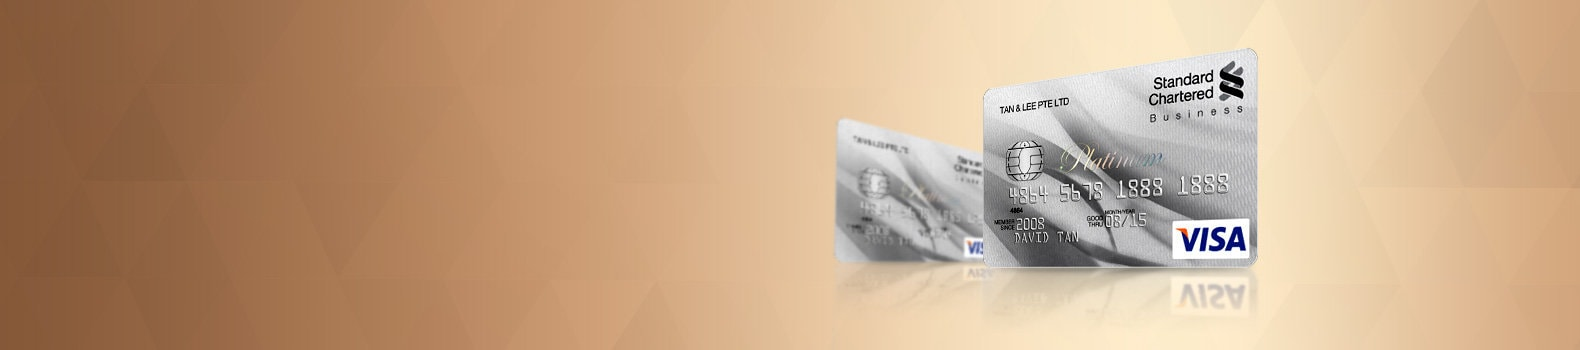 Employee Banking Business Platinum credit card